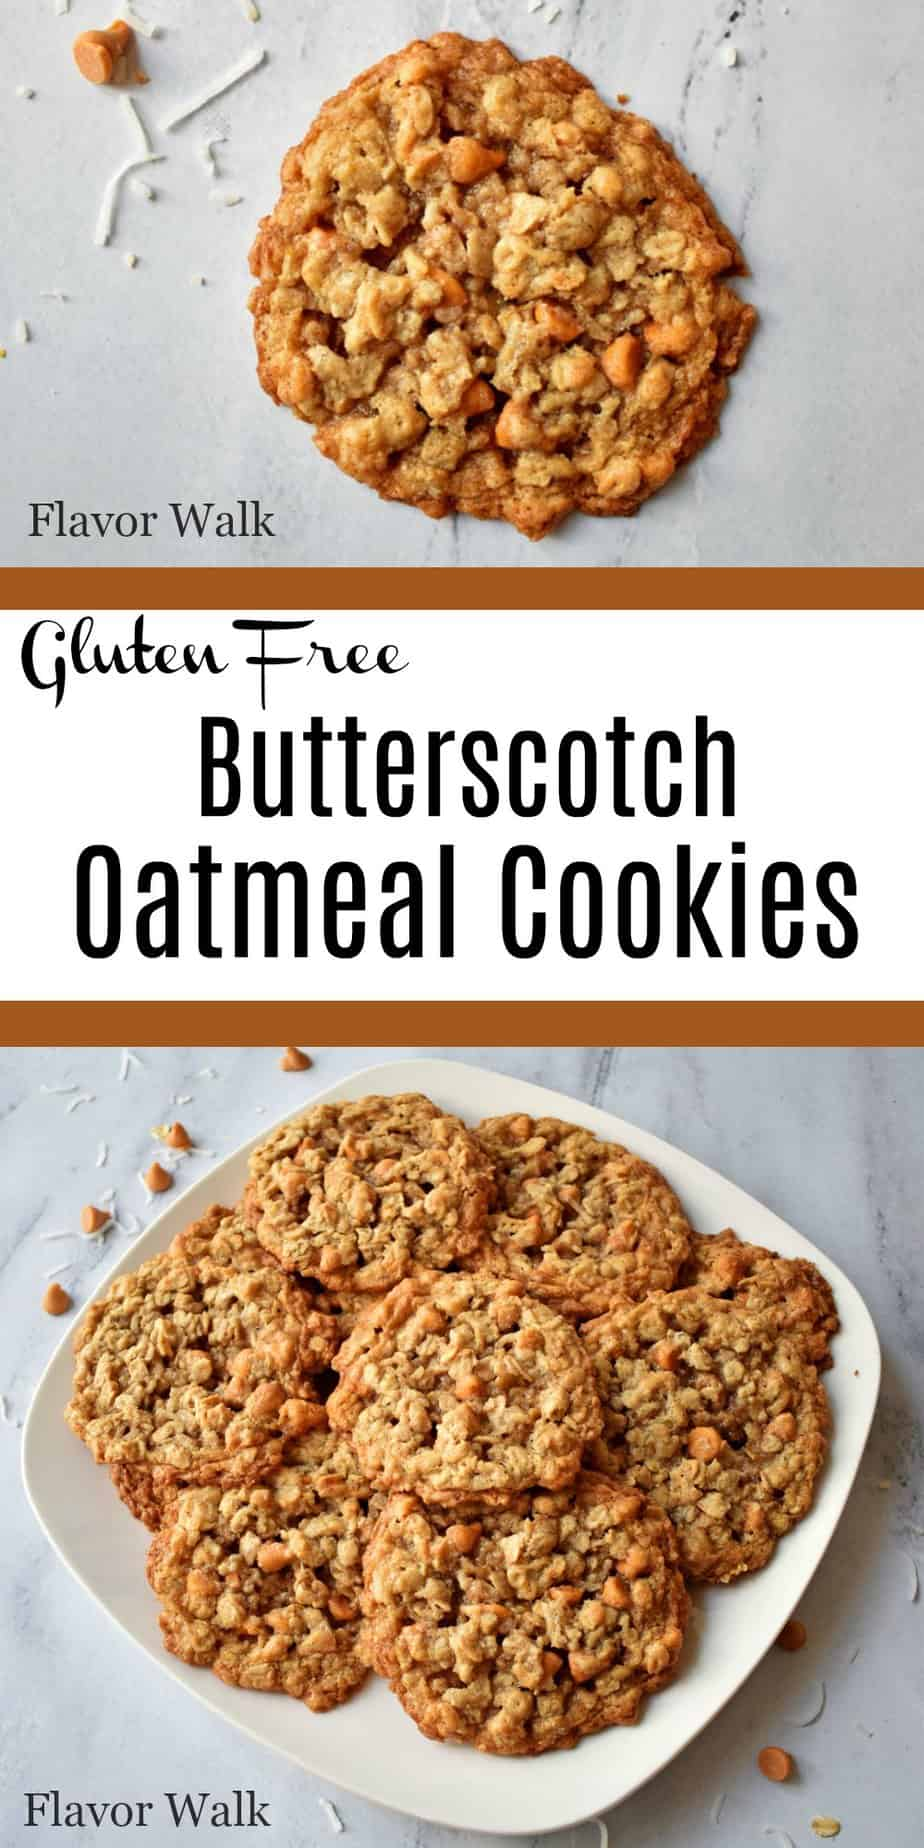 These butterscotch oatmeal cookies with toasted coconut are sweet and chewy. This easy gluten free recipe is a new twist on an old classic.